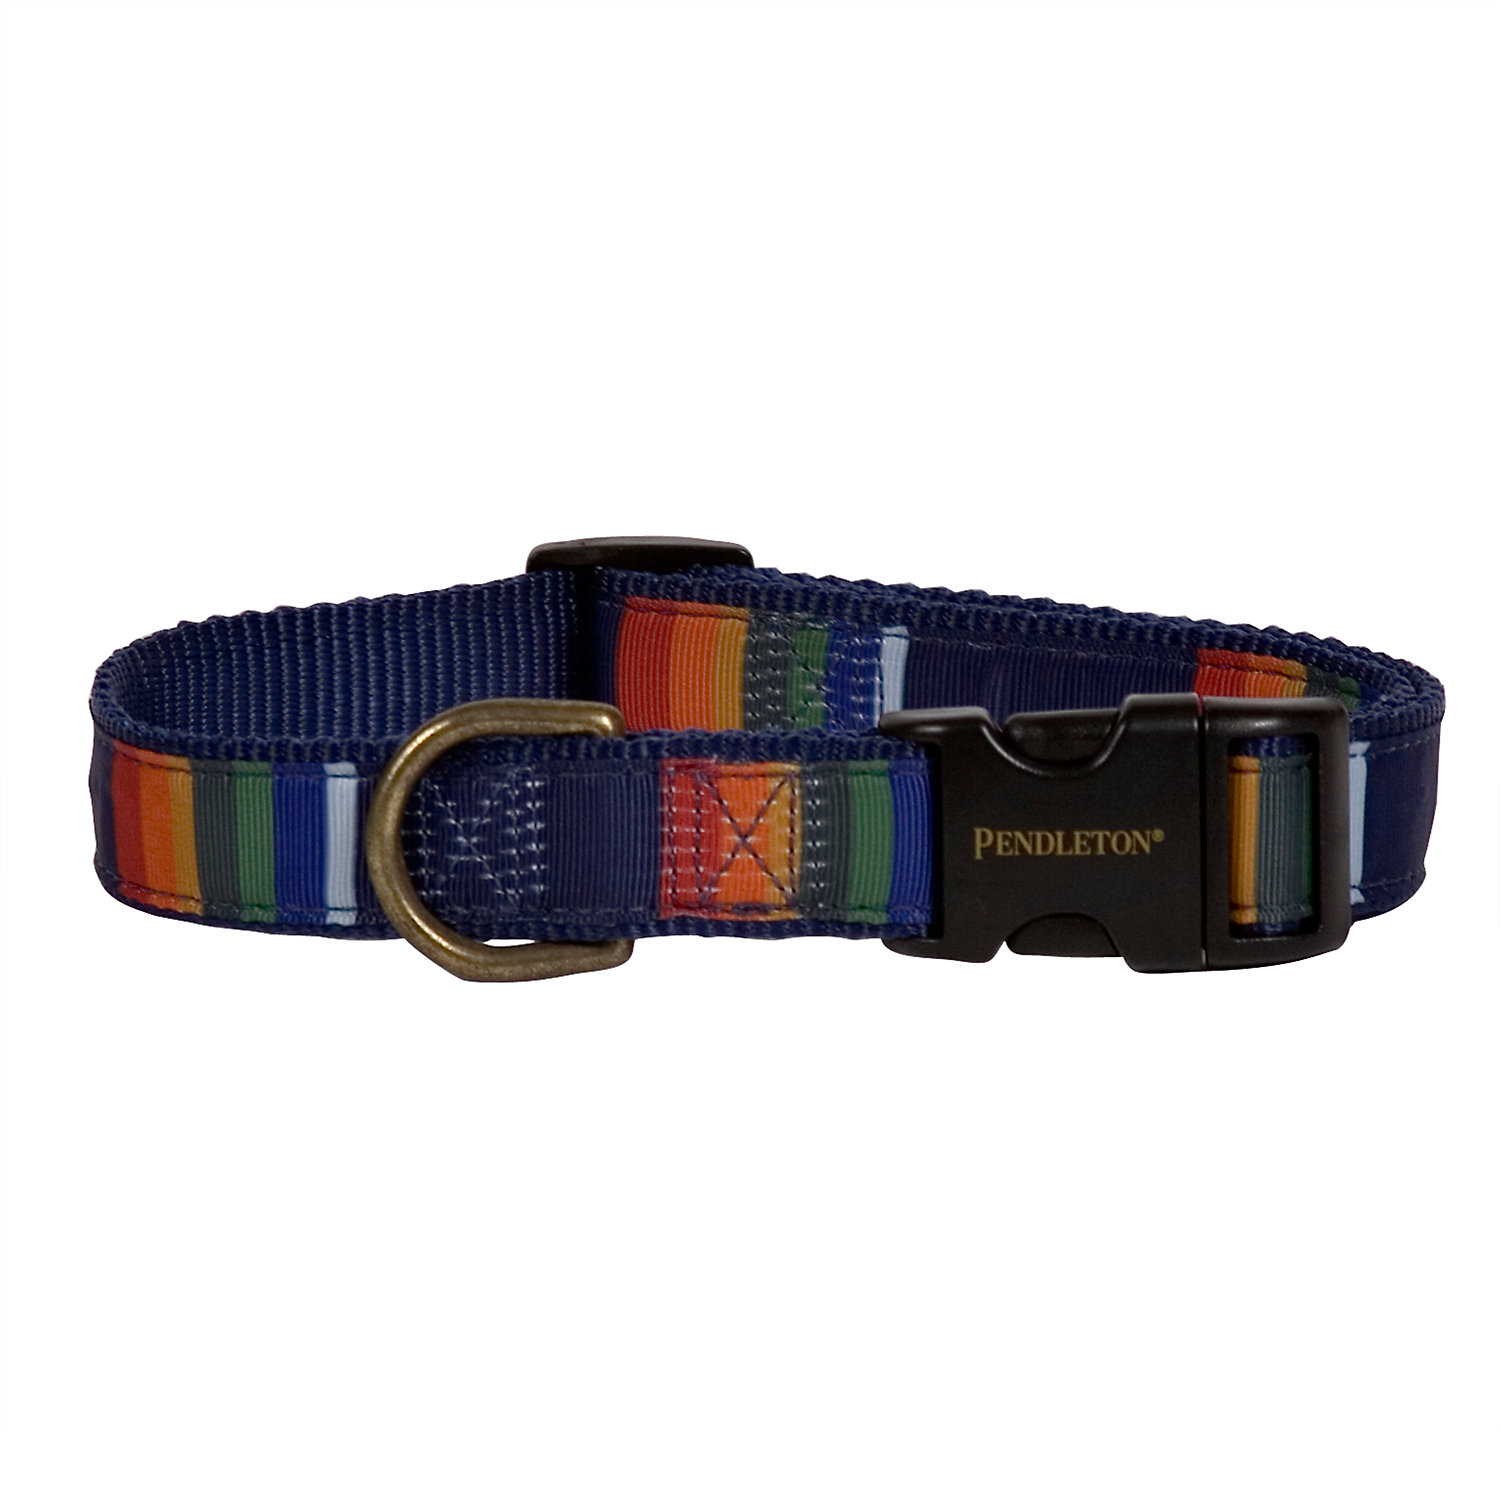 Pendleton Crater Lake National Park Hiker Dog Collar, Small